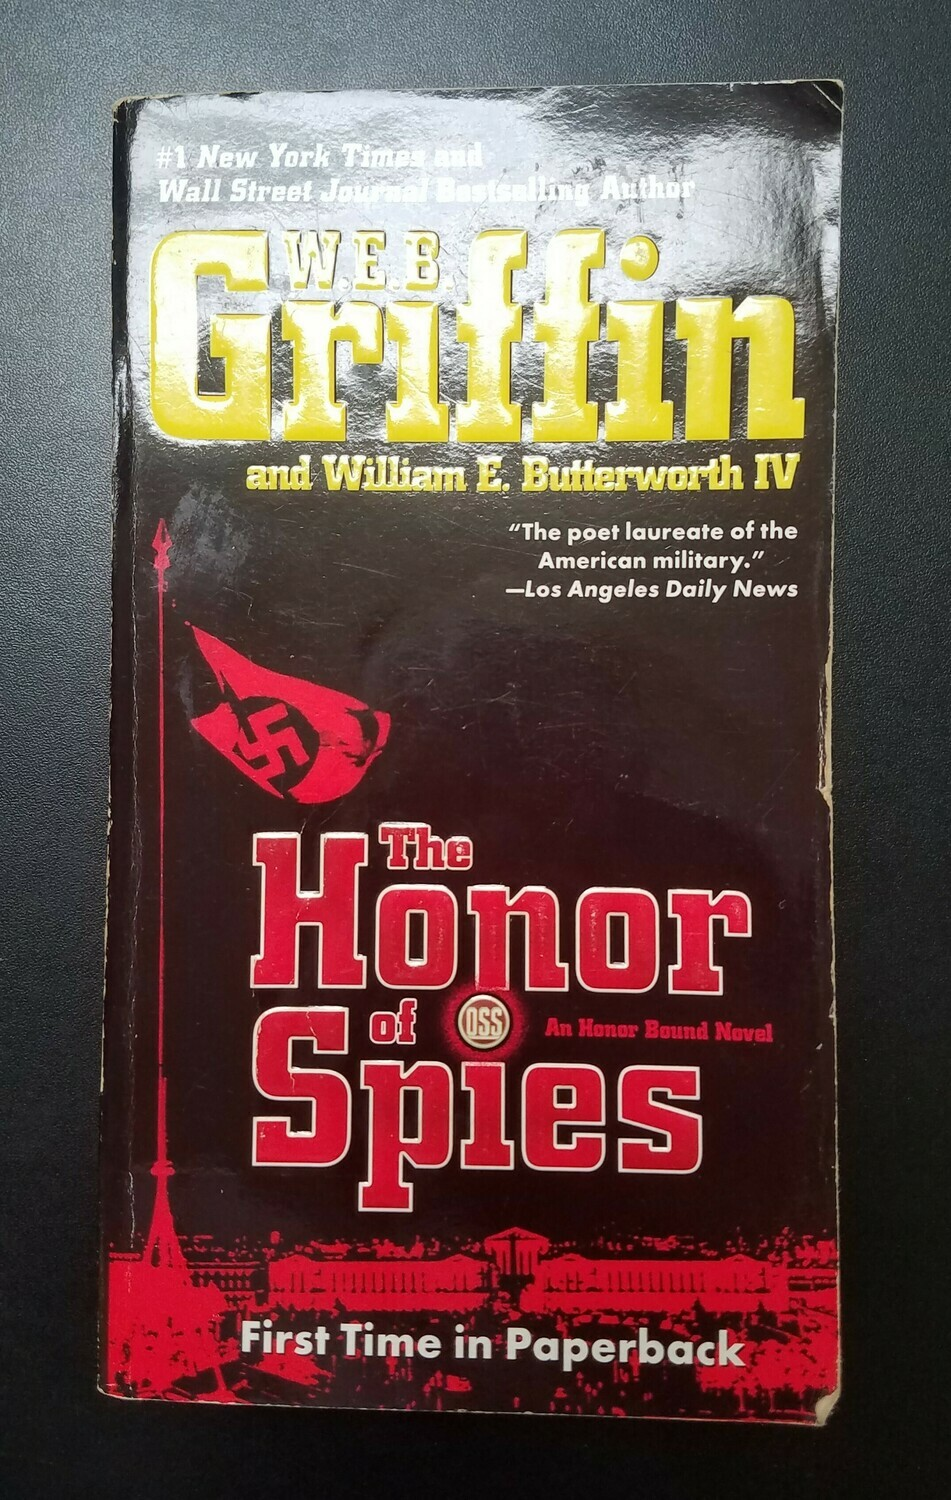 The Honor of Spies by W.E.B. Griffin and William E. Butterowrth IV